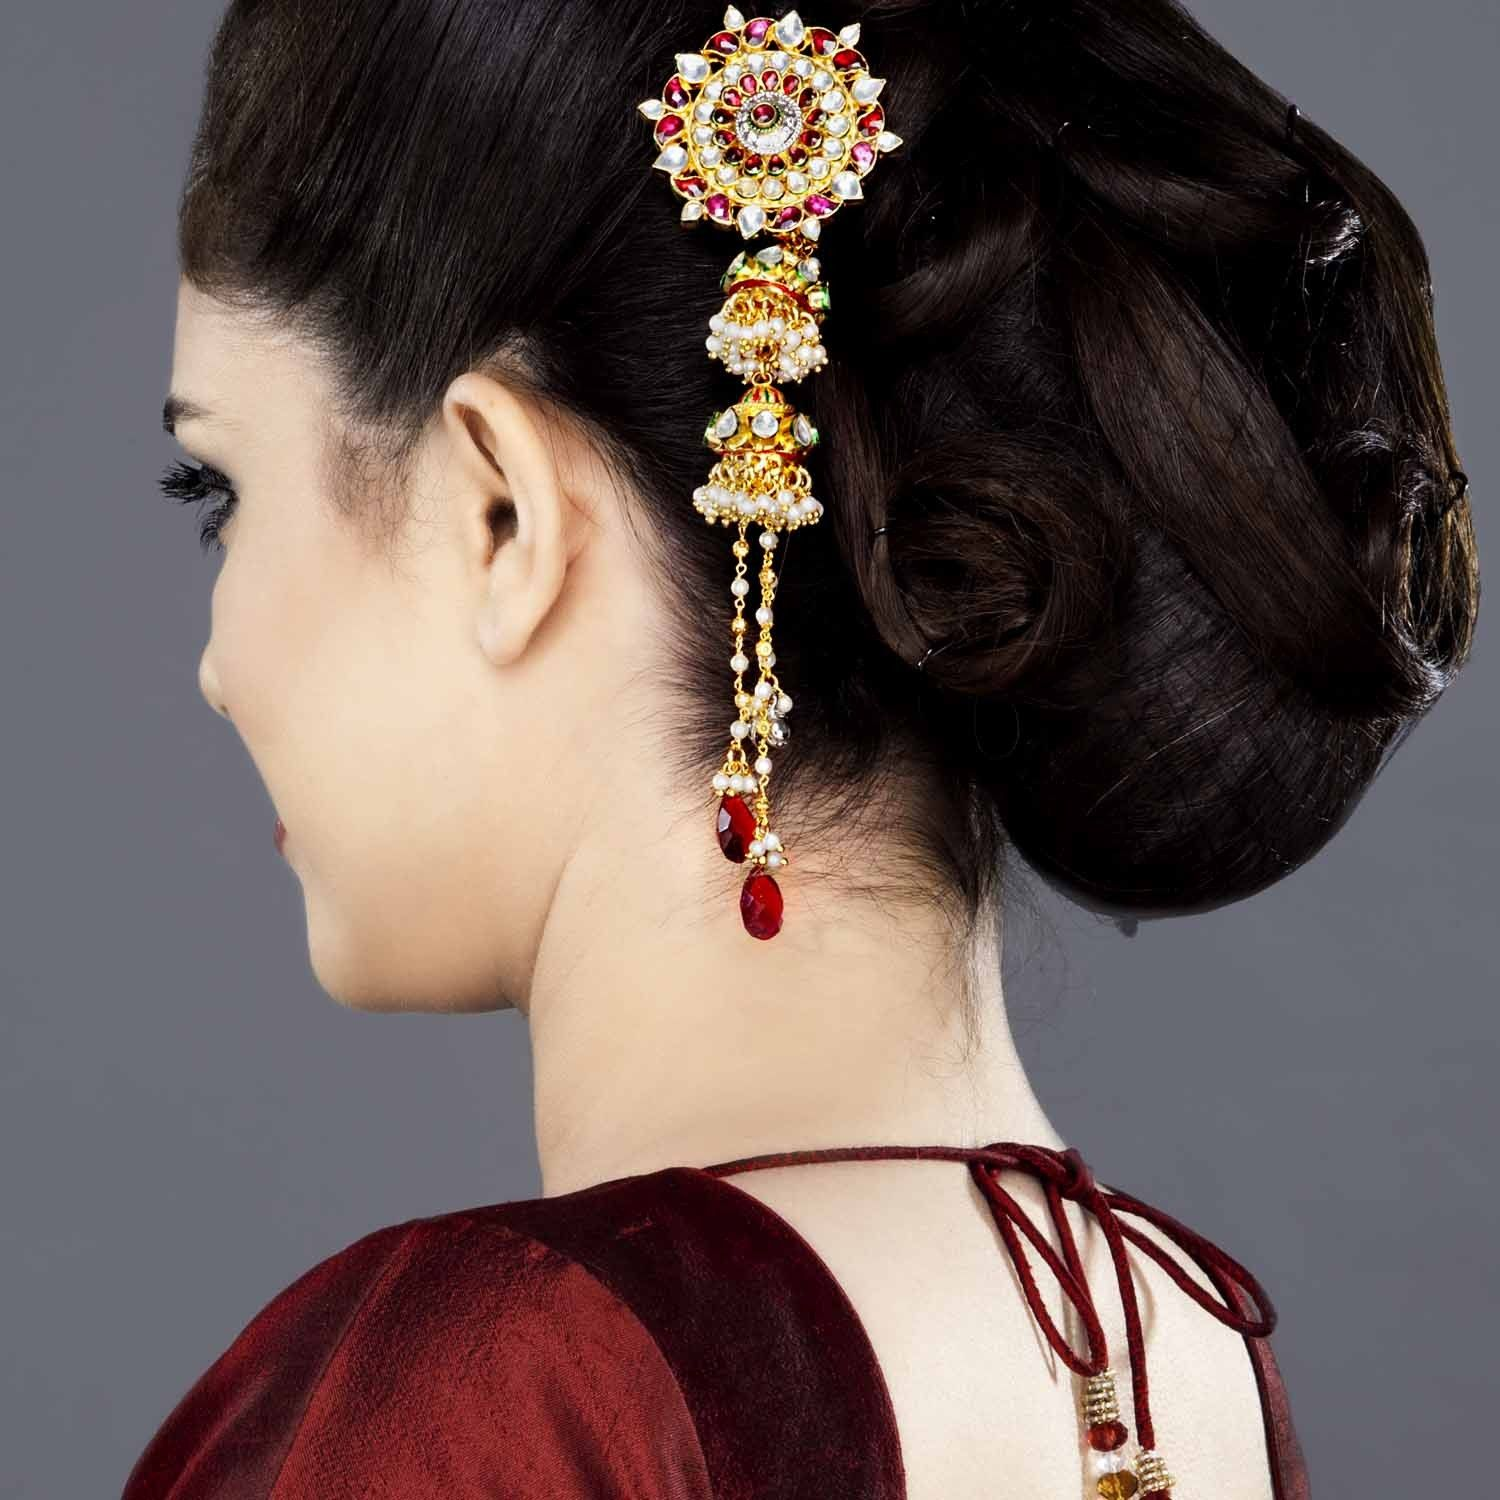 Kundan Jadau Juda Pin Indian Low Bun Hair Styles Hair Hair